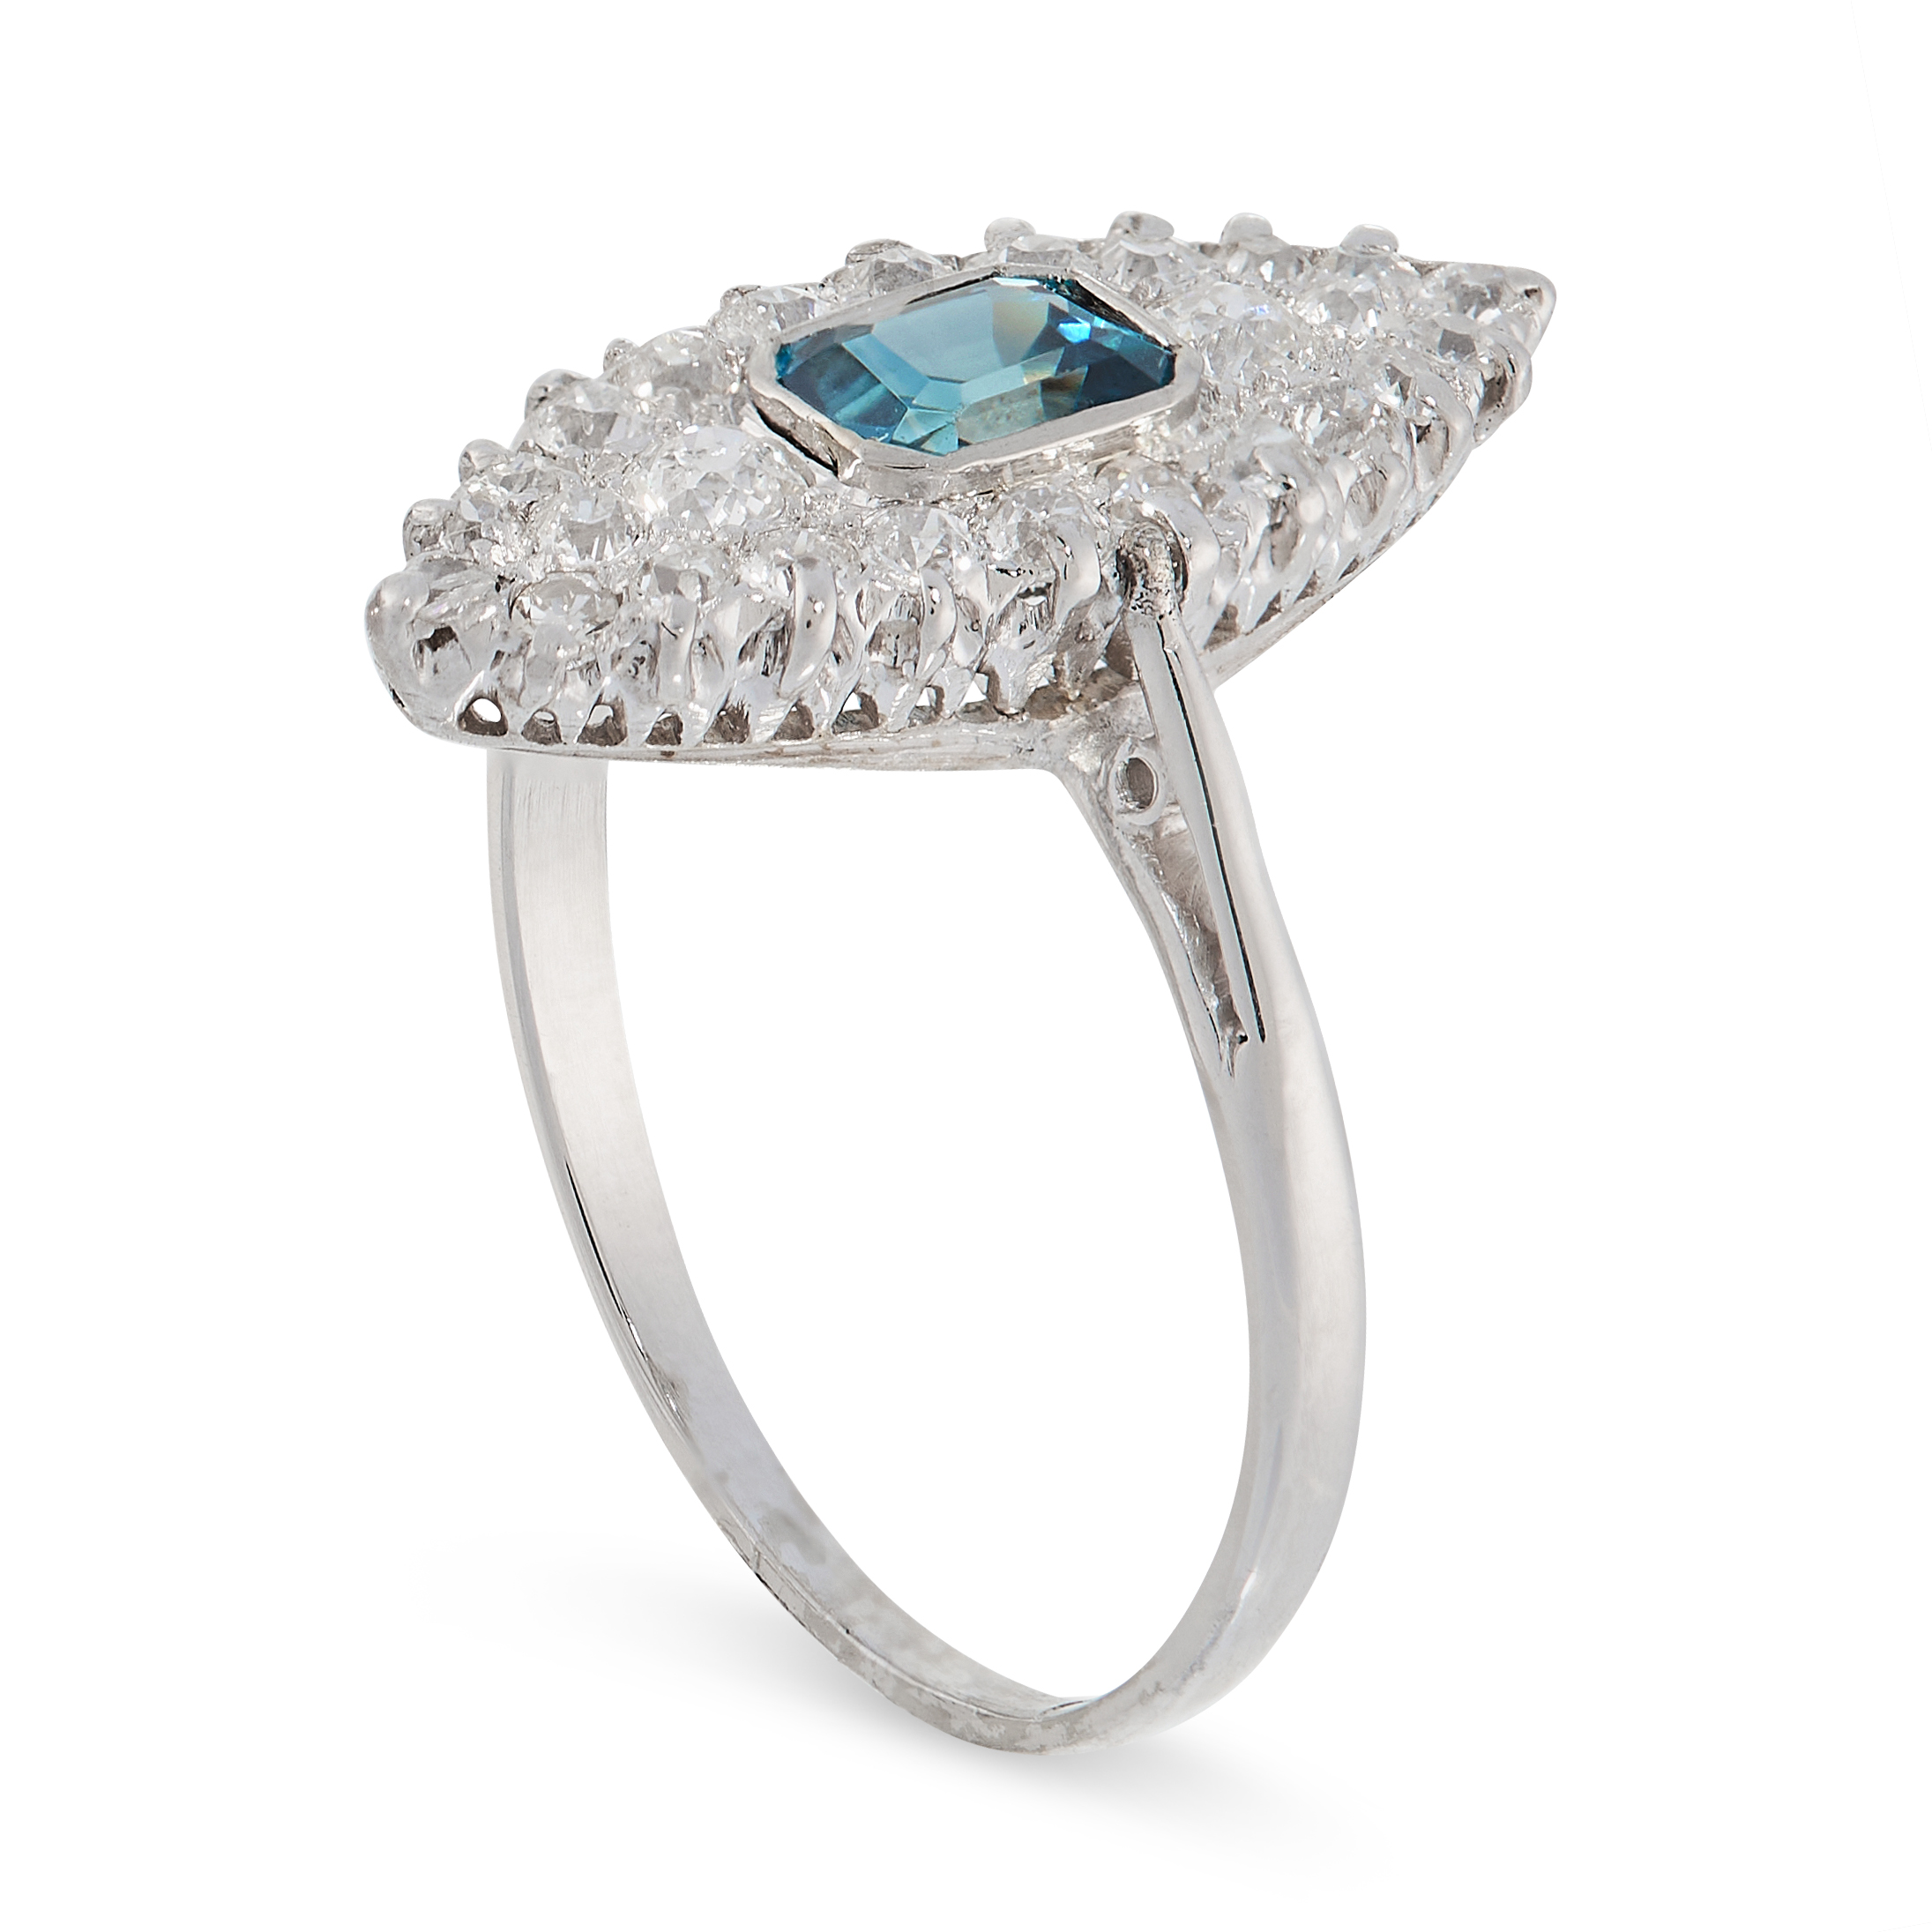 A BLUE ZIRCON AND DIAMOND RING the navette shaped face set with an emerald cut blue zircon, accented - Image 2 of 2